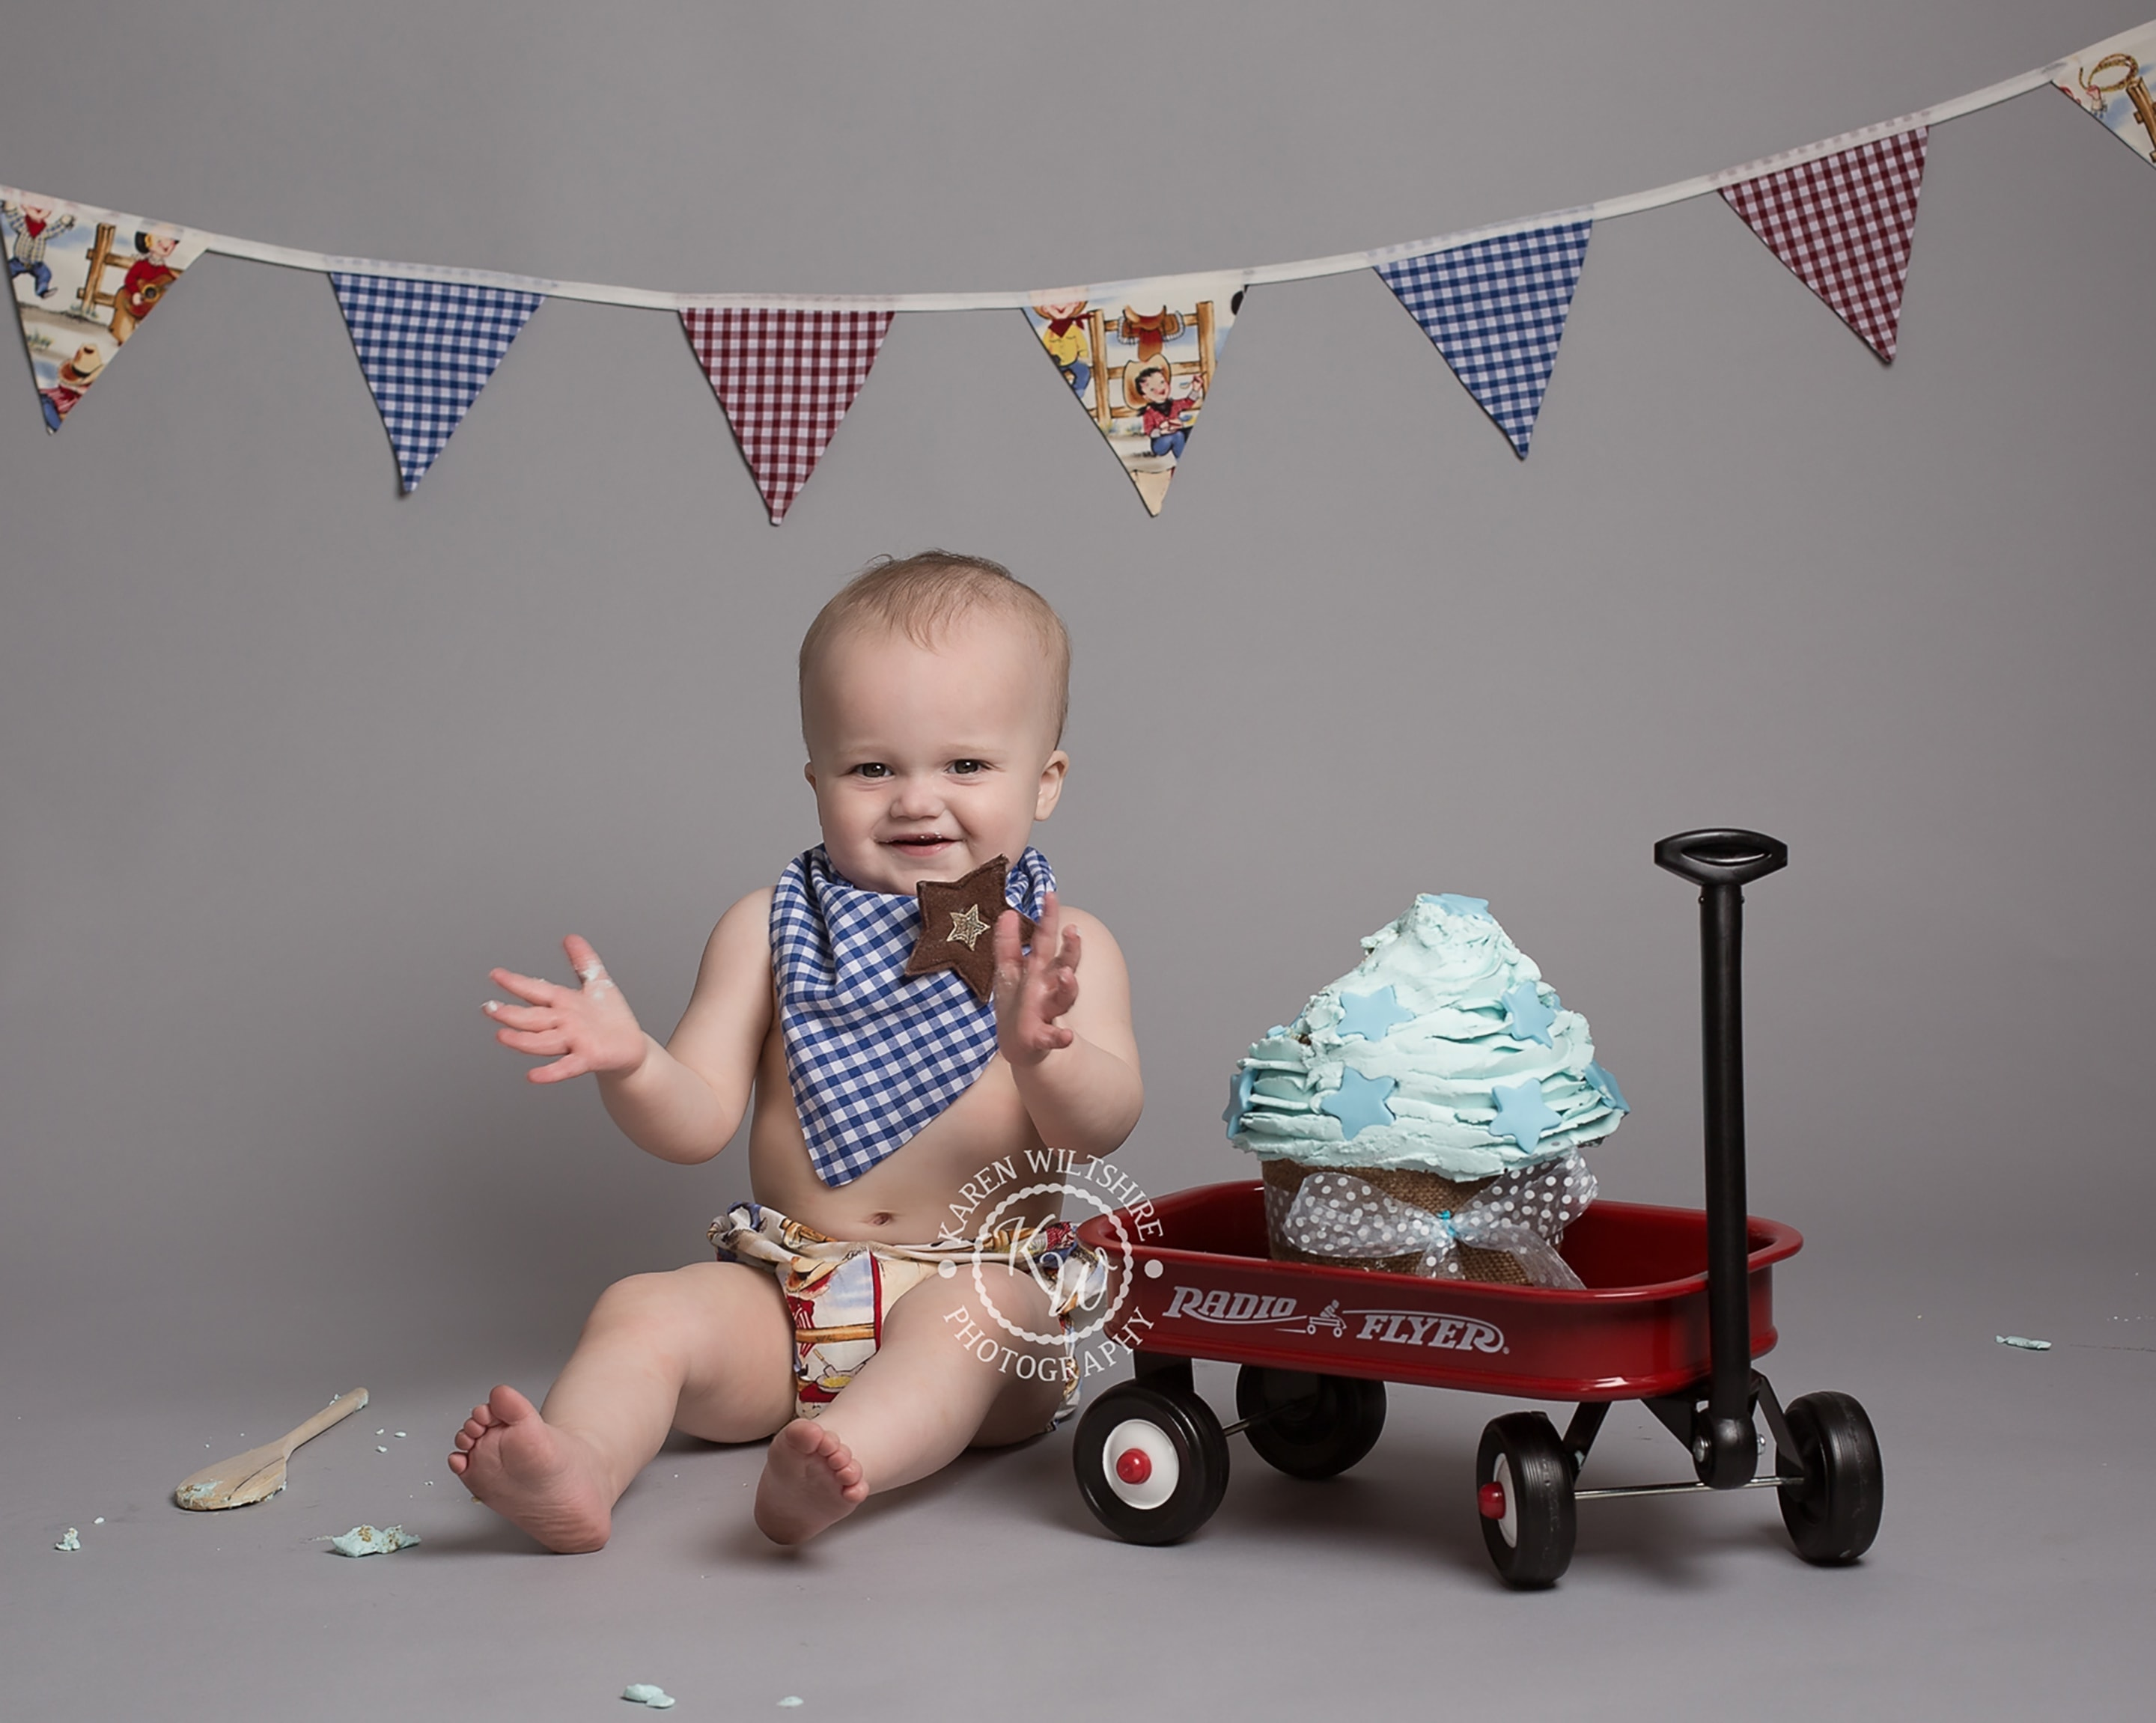 Baby boy cake smash with a red and blue theme